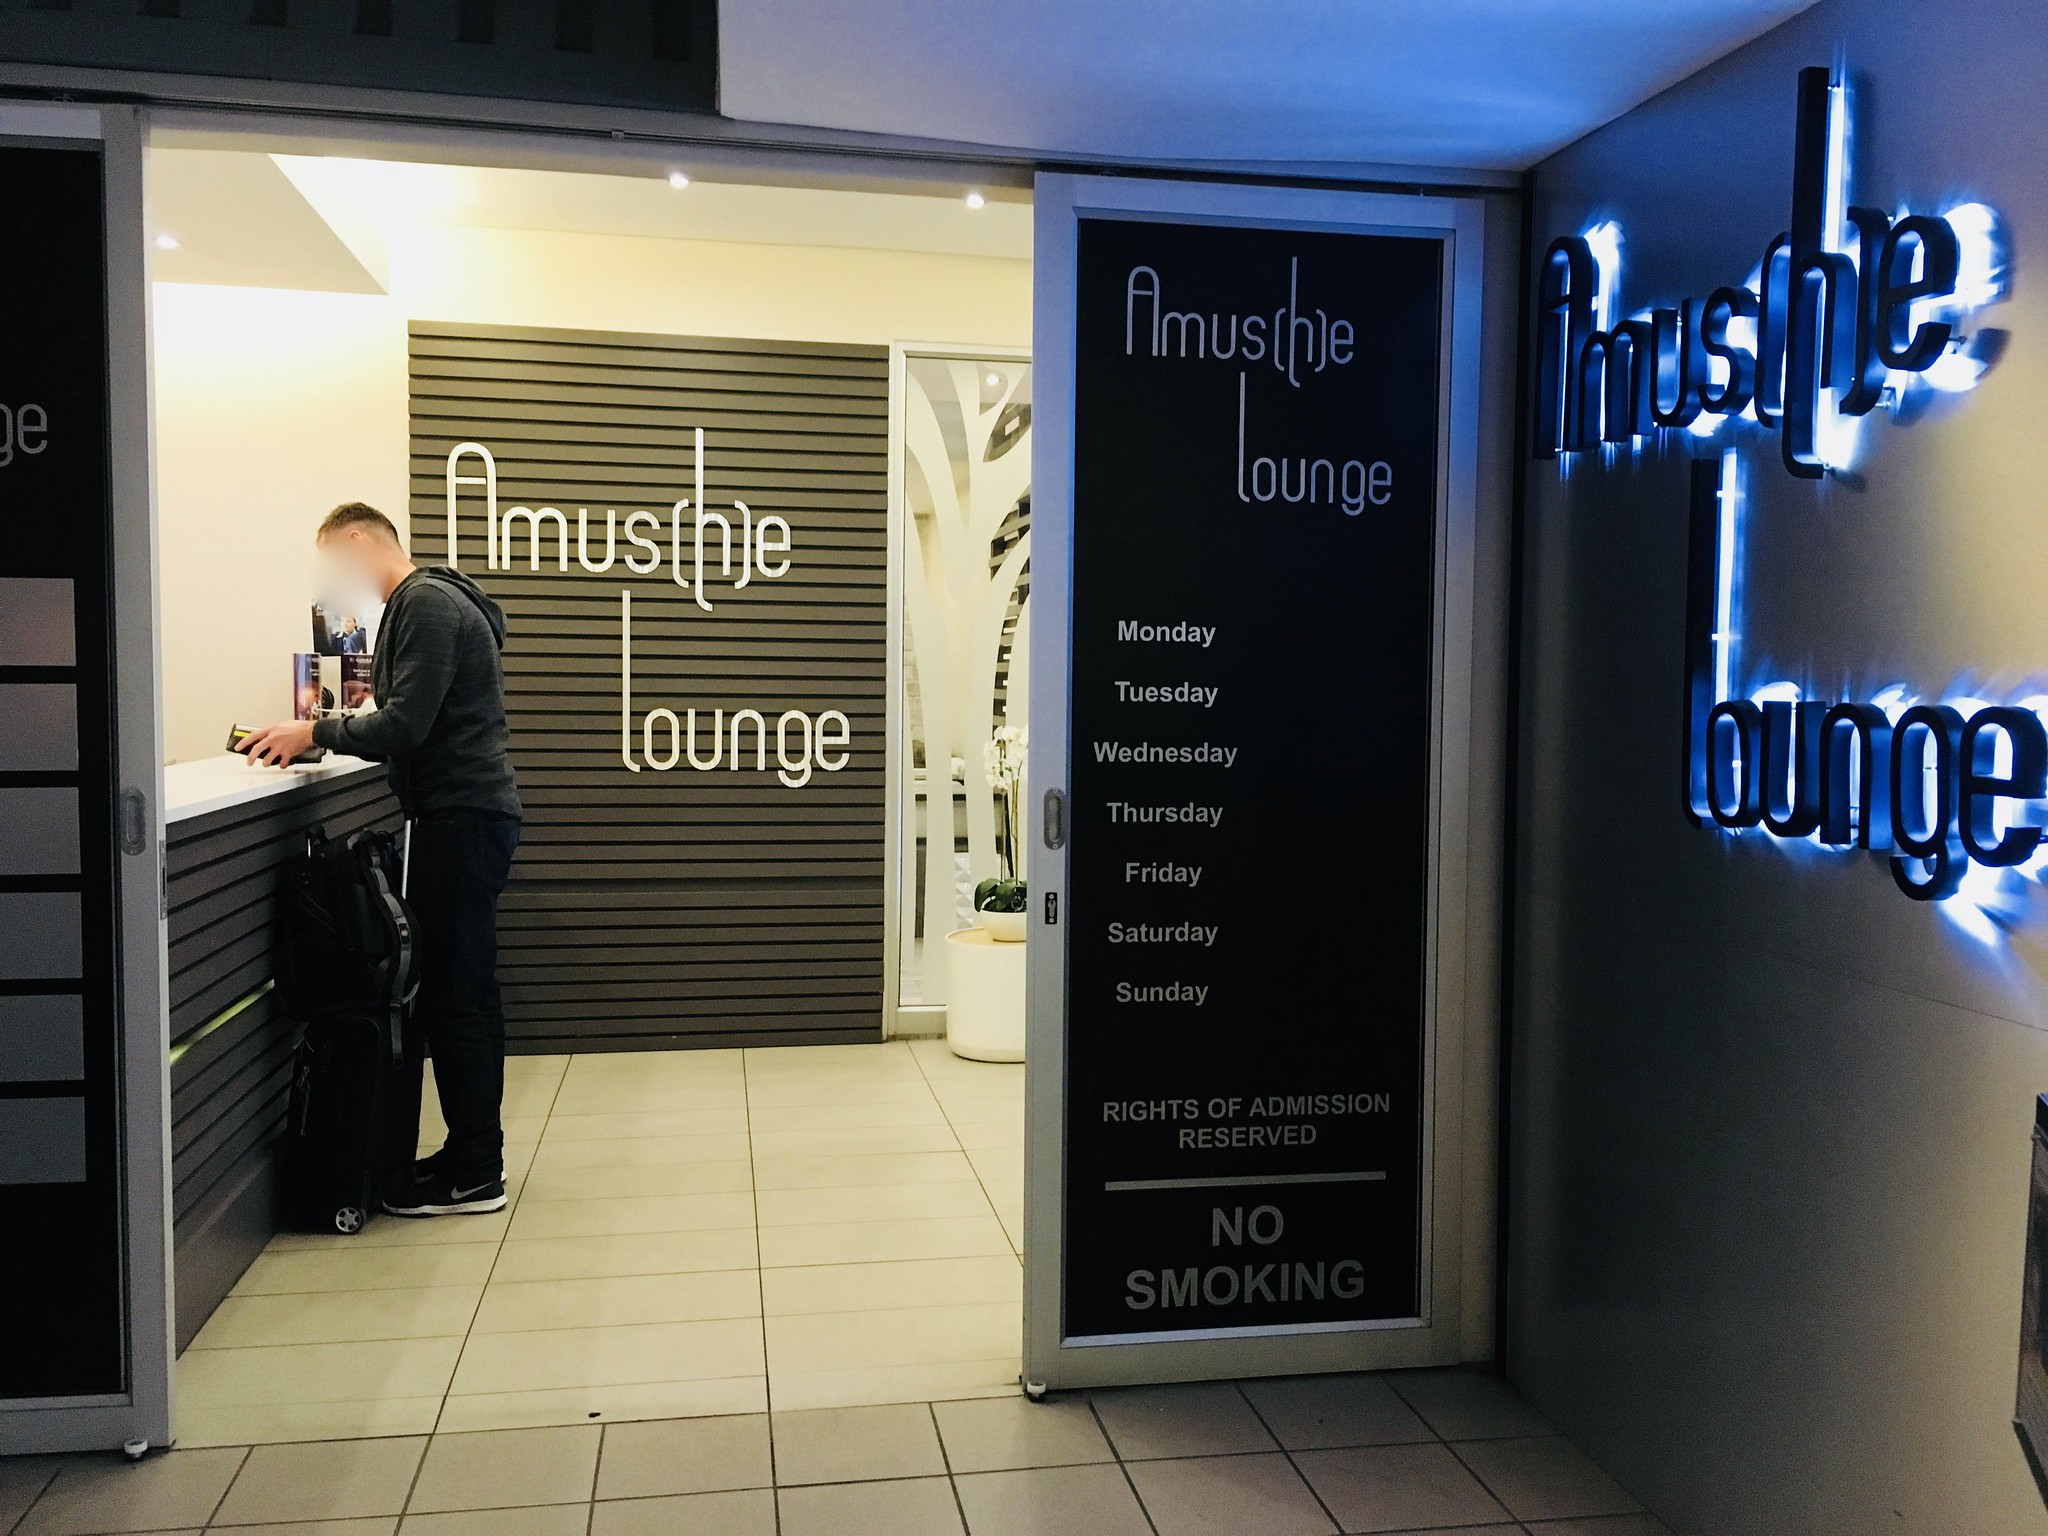 Amushe Lounge Windhoek Namibia